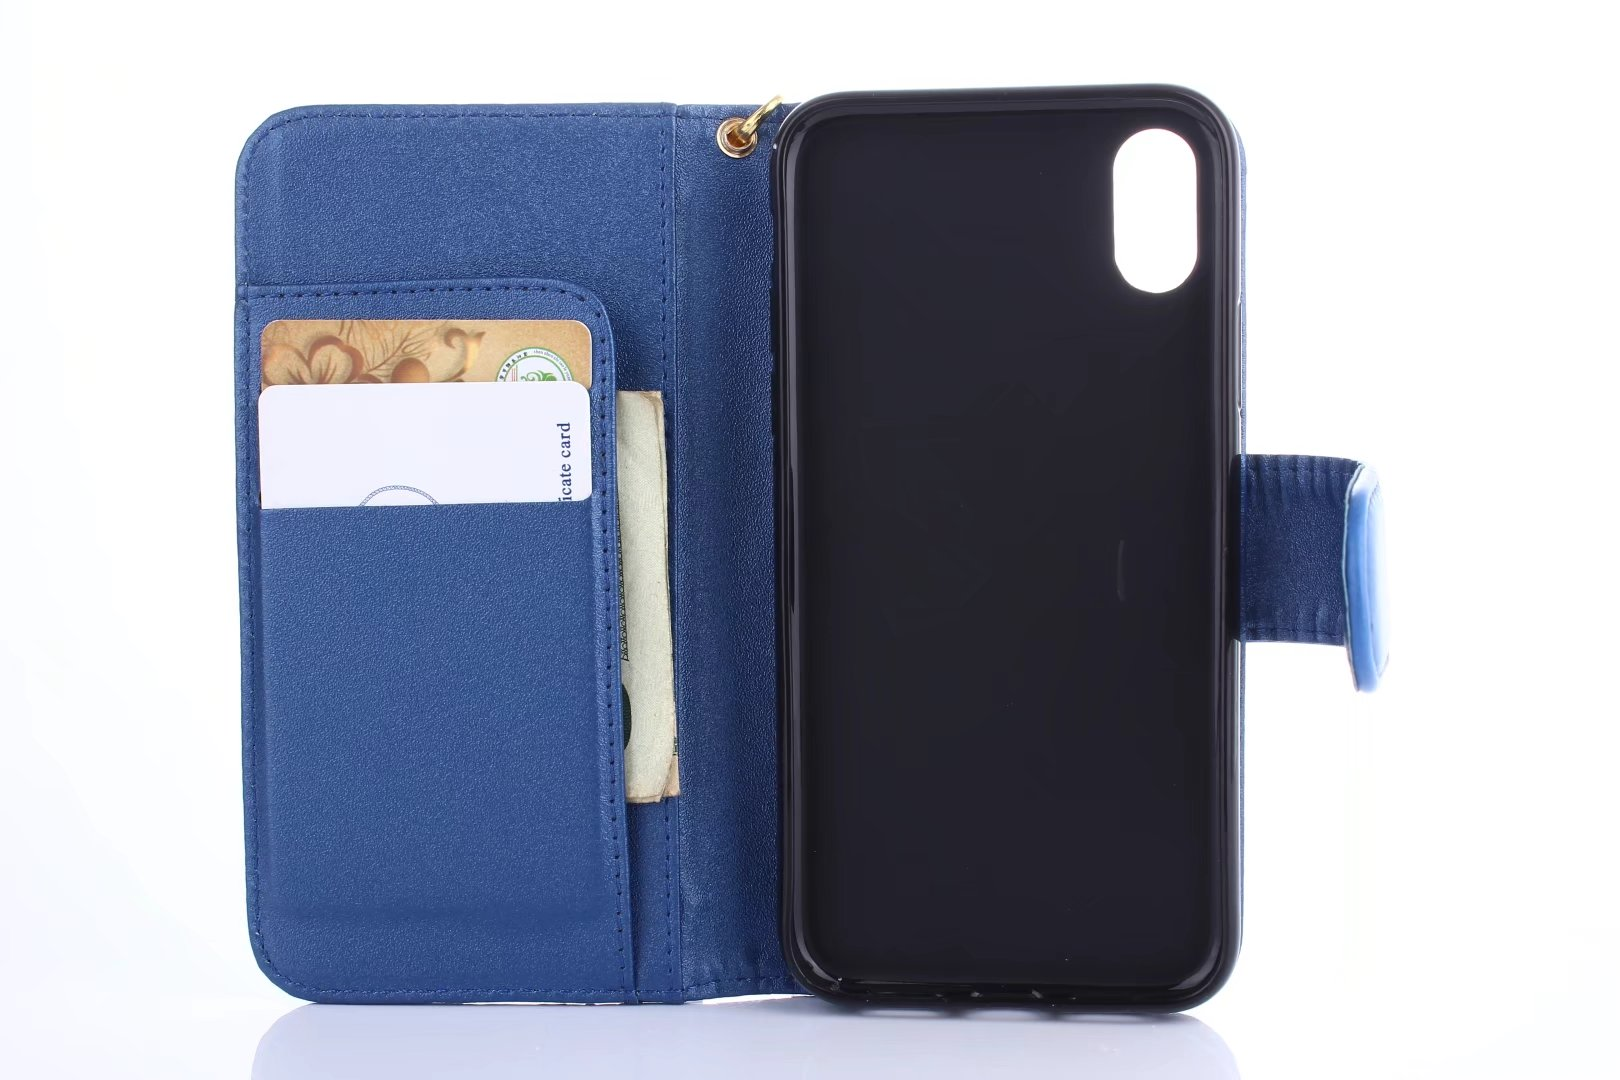 iphone hülle bedrucken lassen iphone hülle mit eigenem foto Chanel iphone X hüllen beste hülle für iphone X handy hülle iphone X flip caX ledertasche neues apple iphone designer ipad hülle coole hüllen für iphone X